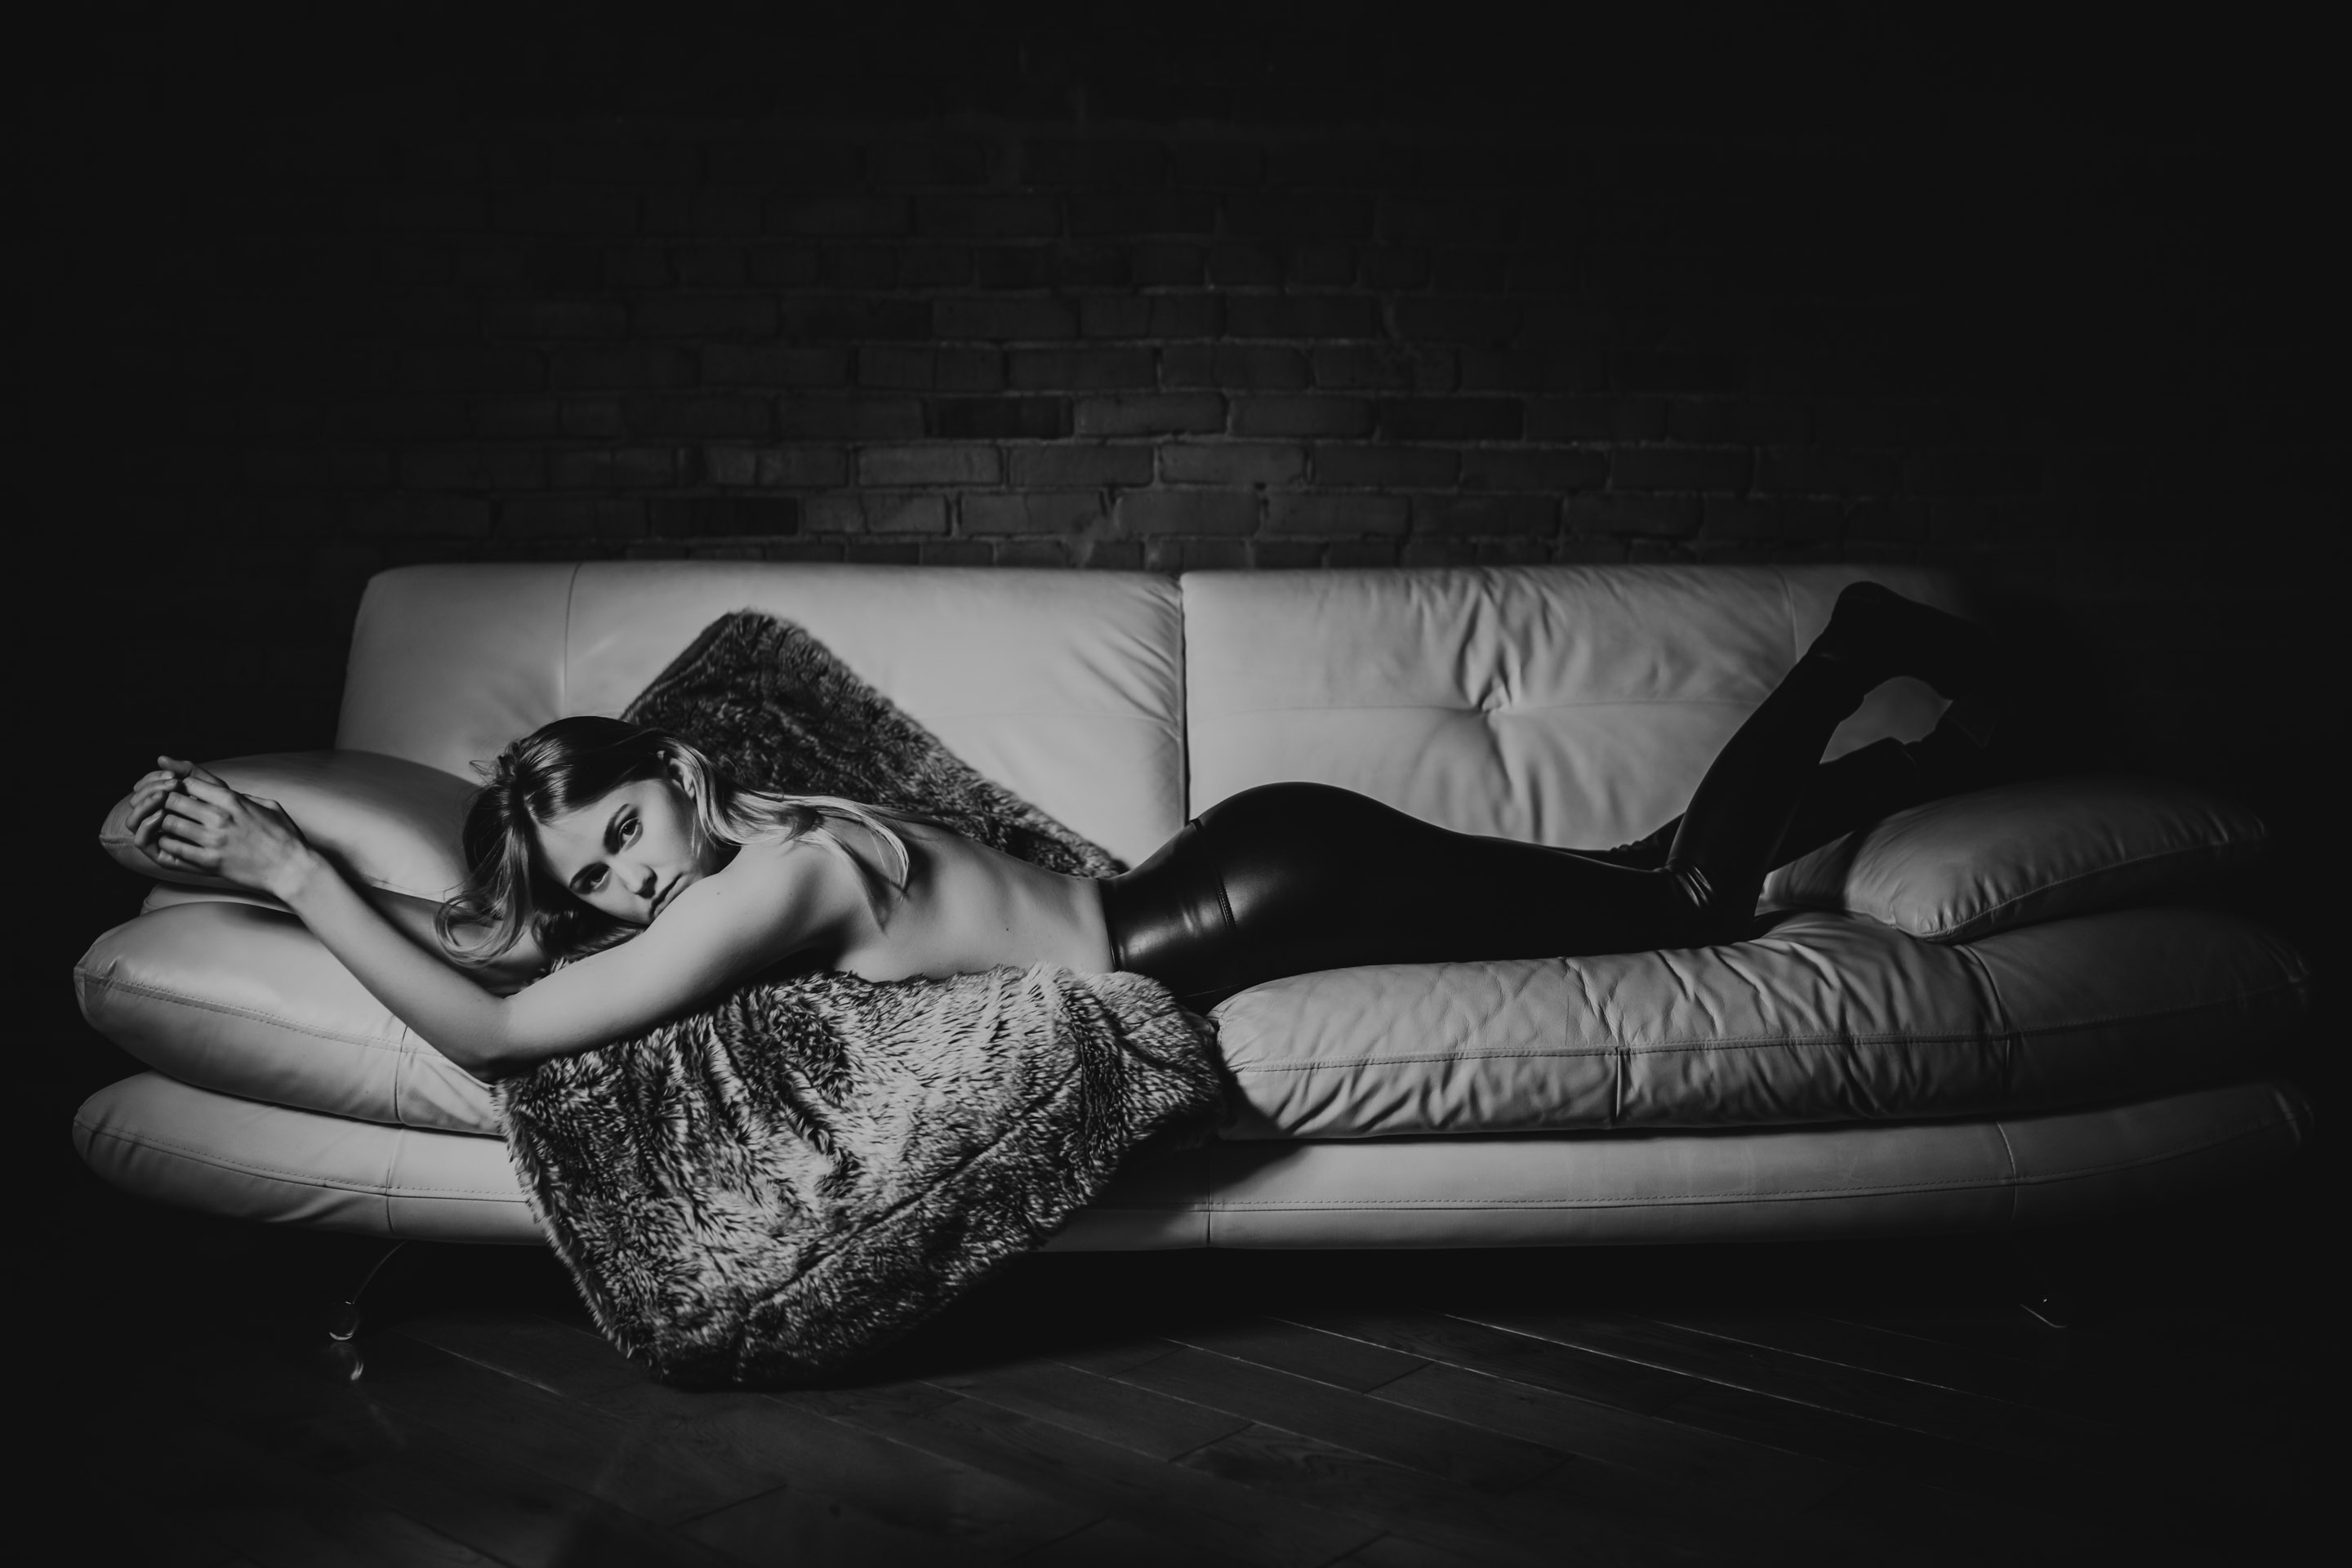 Calgary Boudoir, Edmonton Boudoir, Calgary Boudoir Photographer, Calgary Boudoir Photographers, Best Boudoir Photographers, Boudoir Ideas, Boudoir Photoshoot, Boudoir Inspiration, YYC Boudoir, Boudoir Poses, Intimate Portraits, Calgary Photographer, Calgary Photographers, sasha bilida